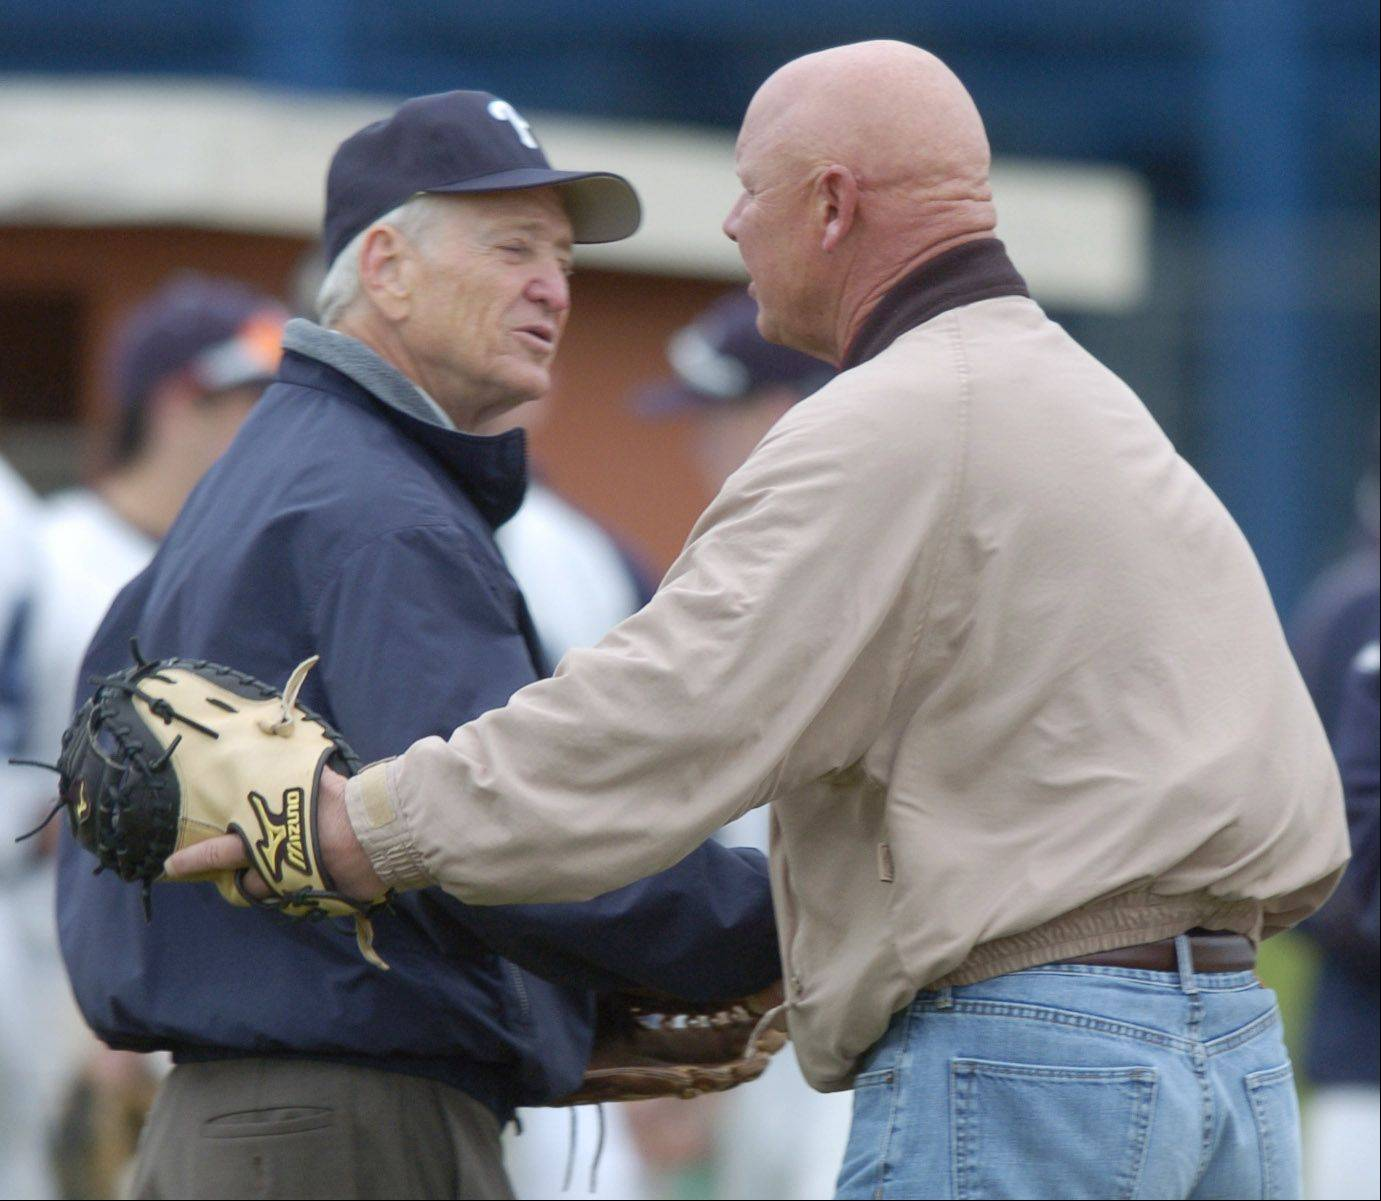 Retired Prospect High School baseball coach Larry Pohlman, left, is congratulated by Chicago Cubs manager and Prospect alumnus Mike Quade after Pohlman threw out the cermonial first pitch before a game against Hersey. The Prospect varsity baseball field was dedicated to Pohlman during a pre-game ceremony.